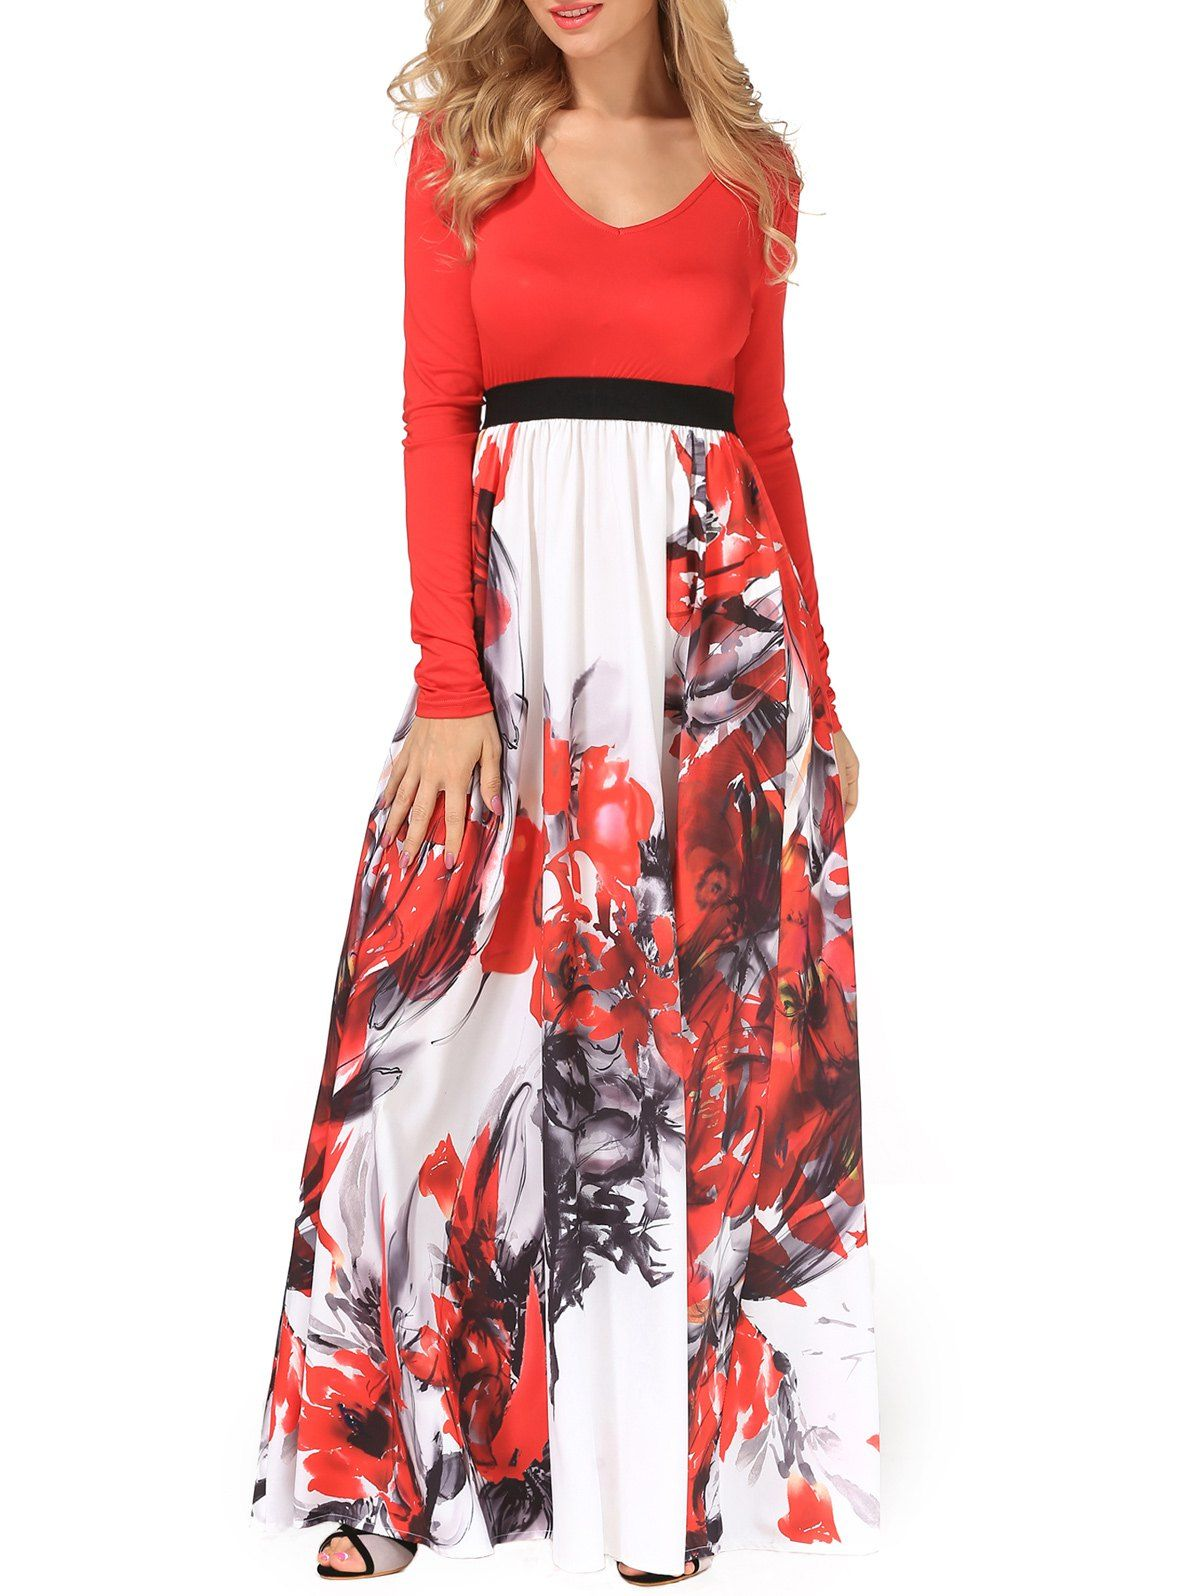 Flower painting v neck maxi dress flowing dresses maxi dresses